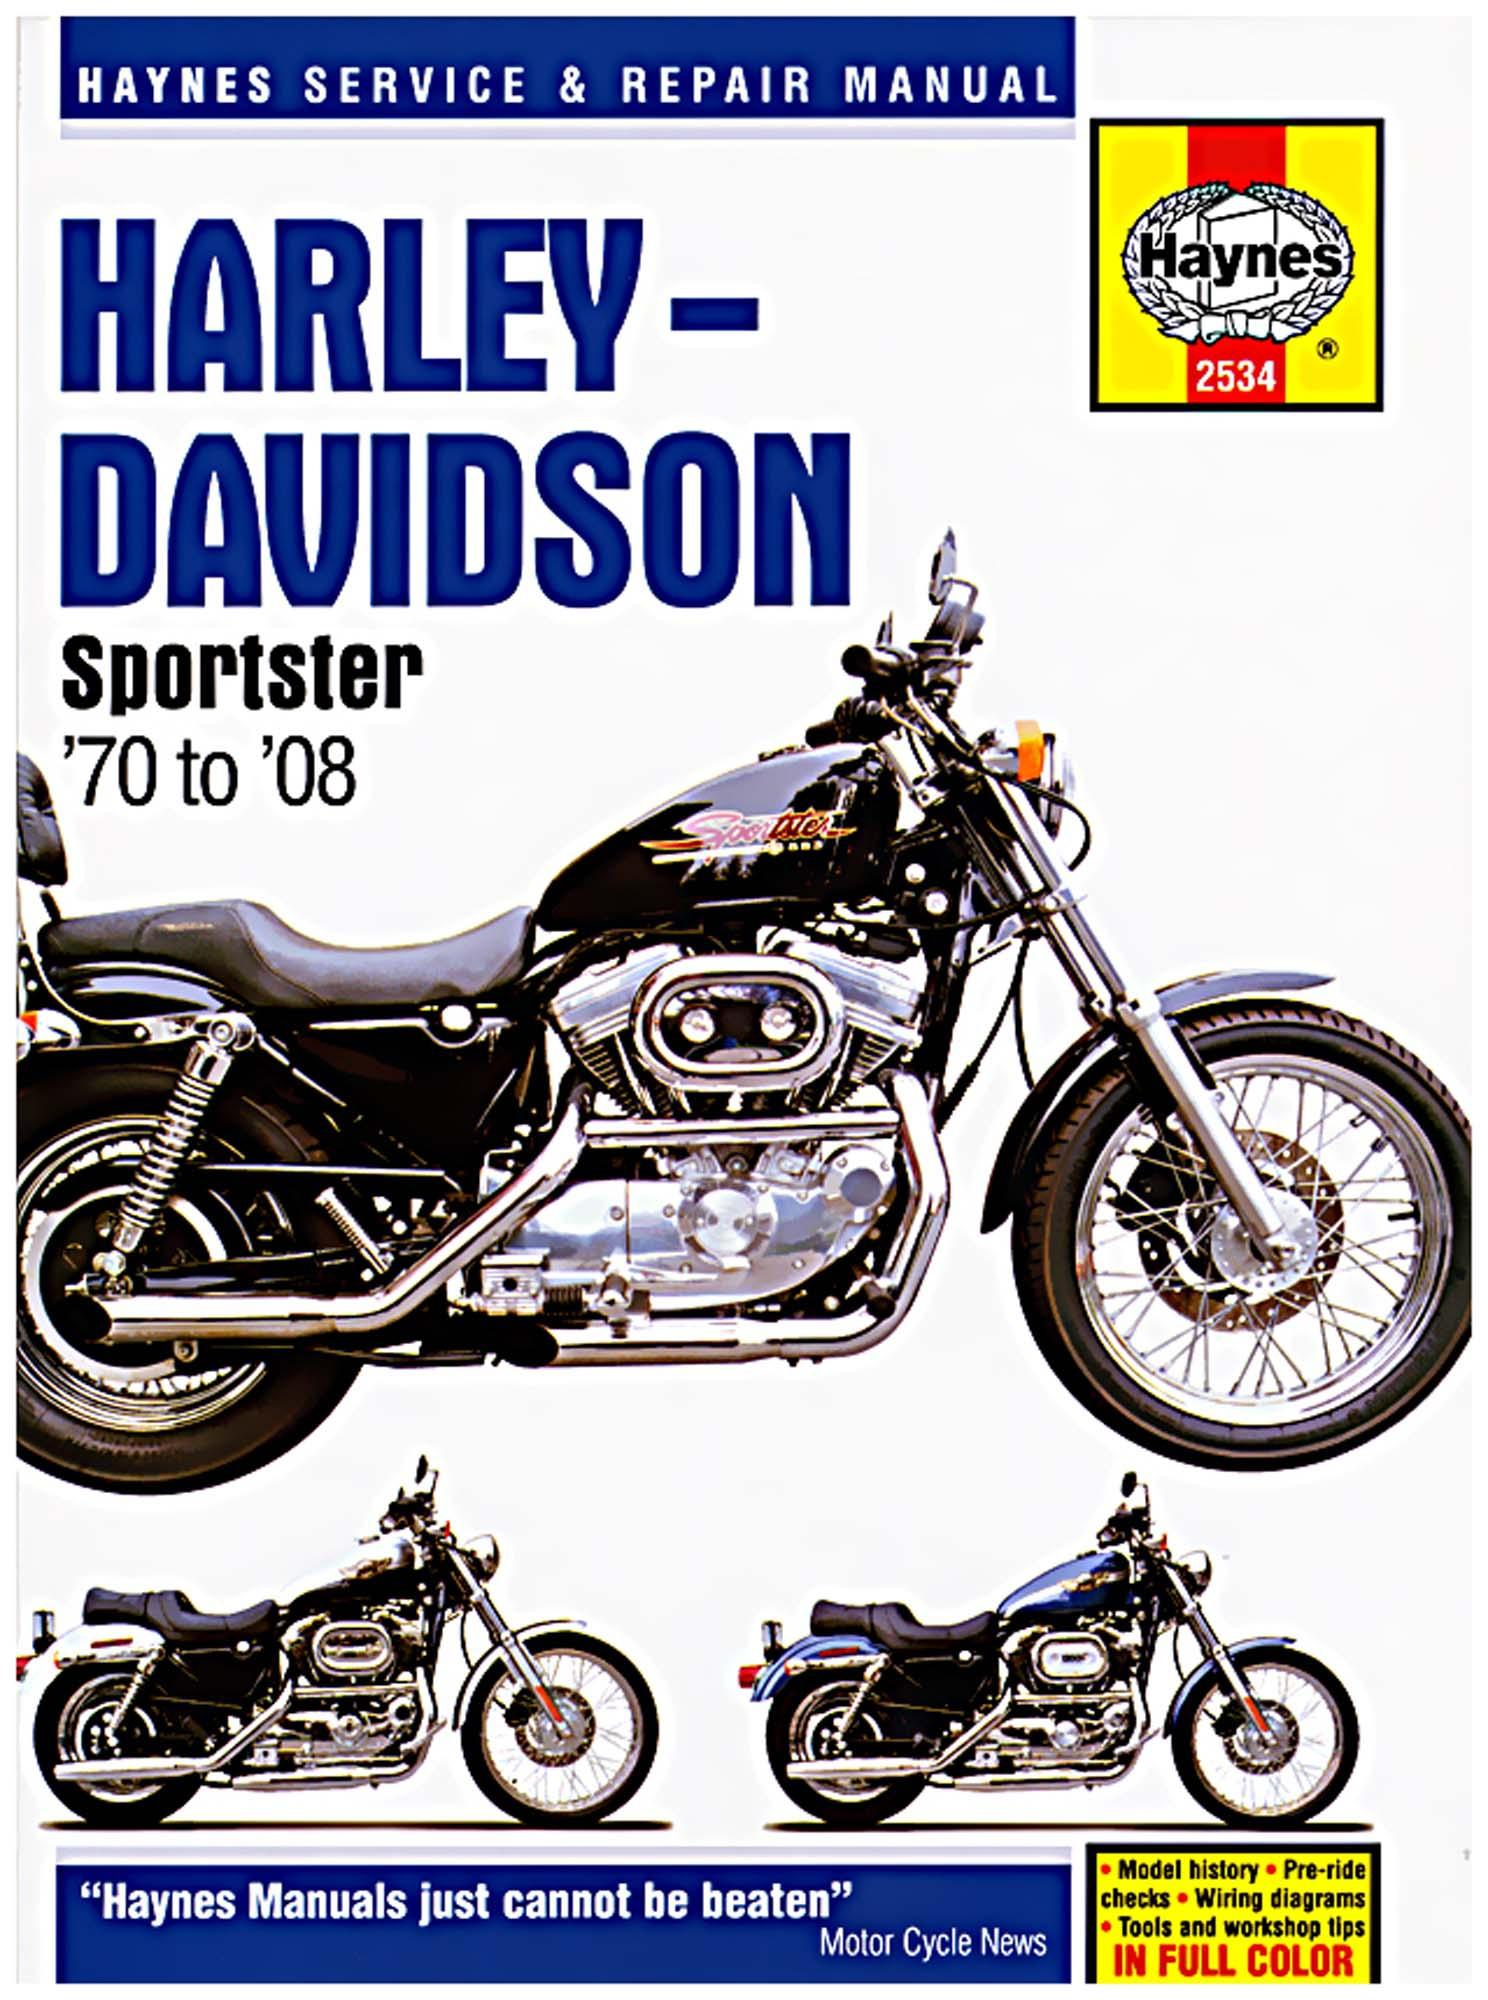 Details about Haynes Service Repair Manual Harley Davidson Sportster on